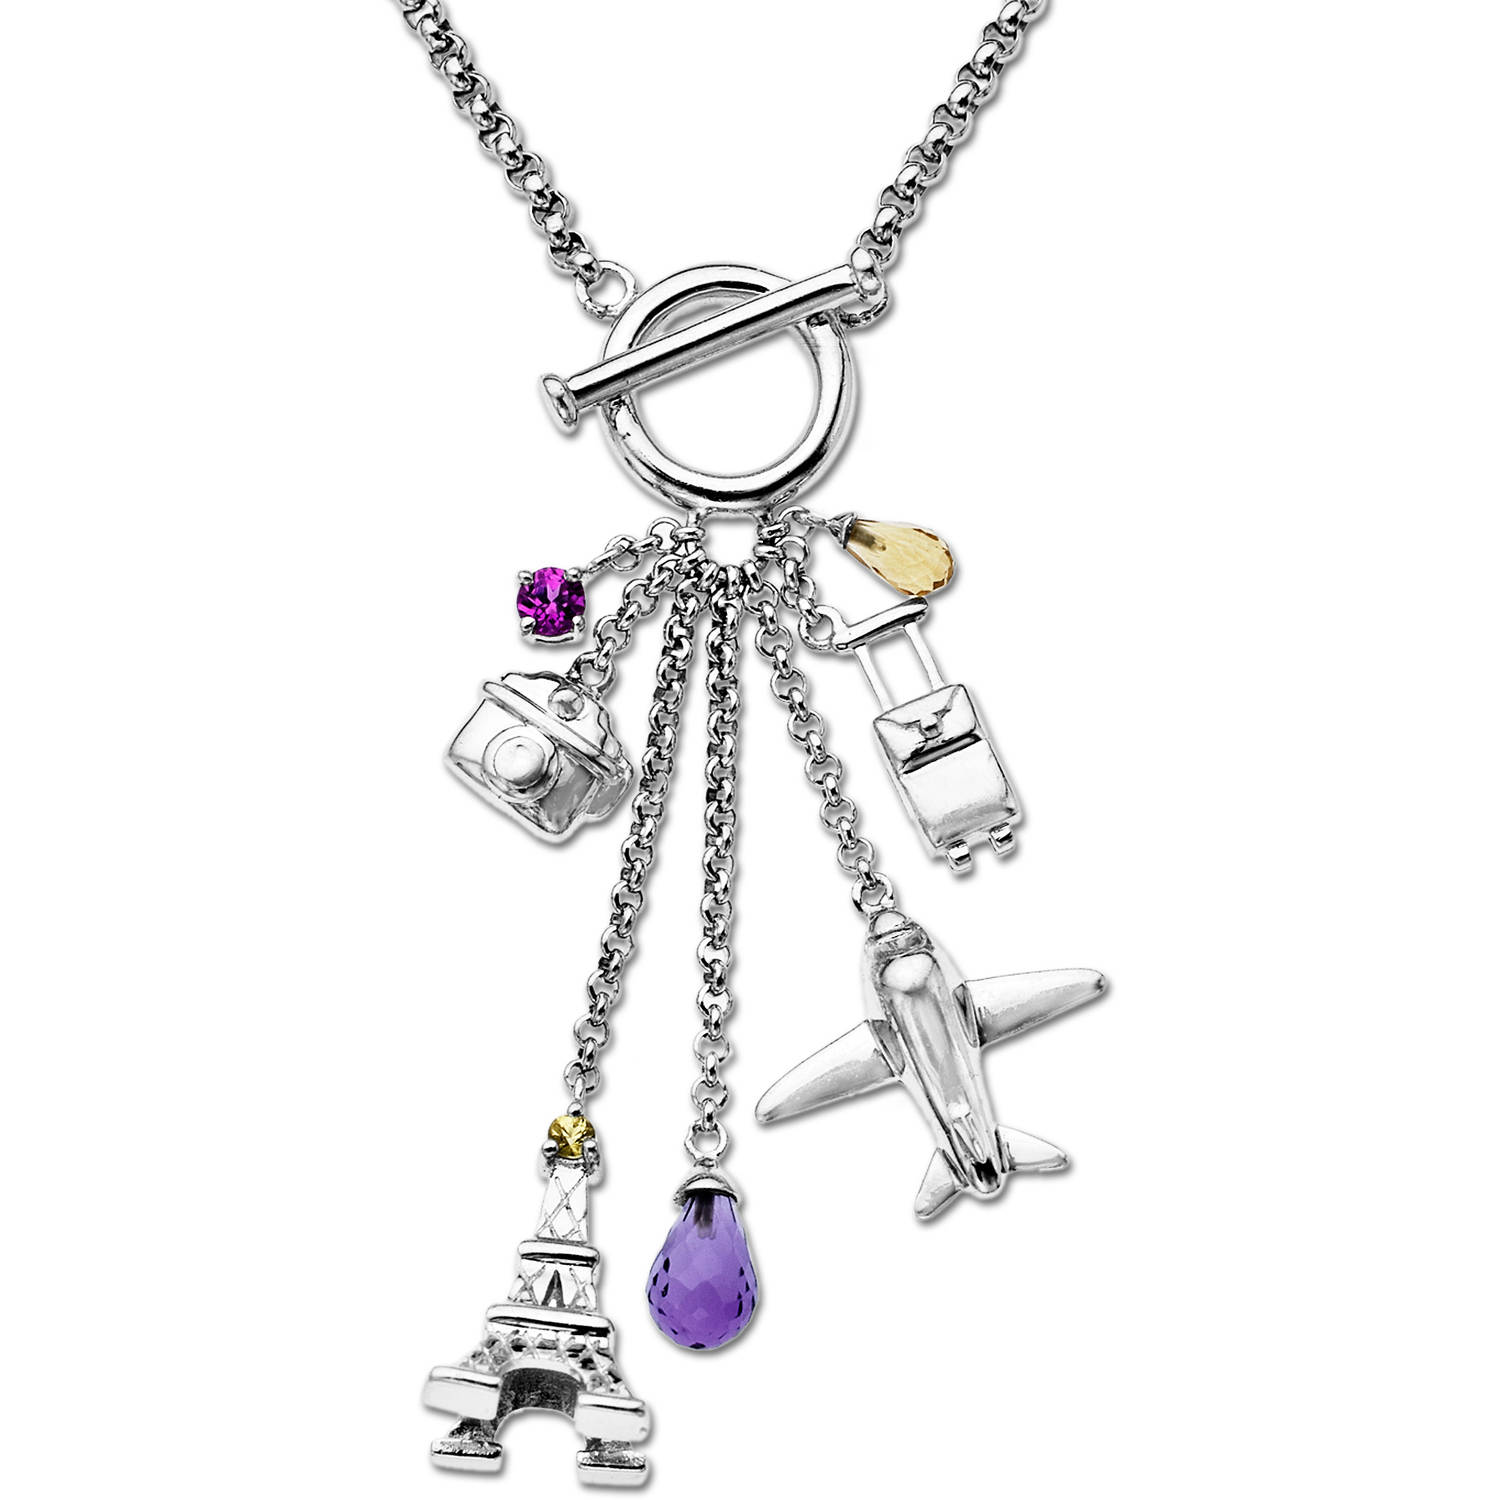 Duet 14kt Yellow Gold and Sterling Silver Yellow Sapphire, Created Pink Sapphire, Citrine and Amethyst Charm Necklace,... by Richline Group Inc